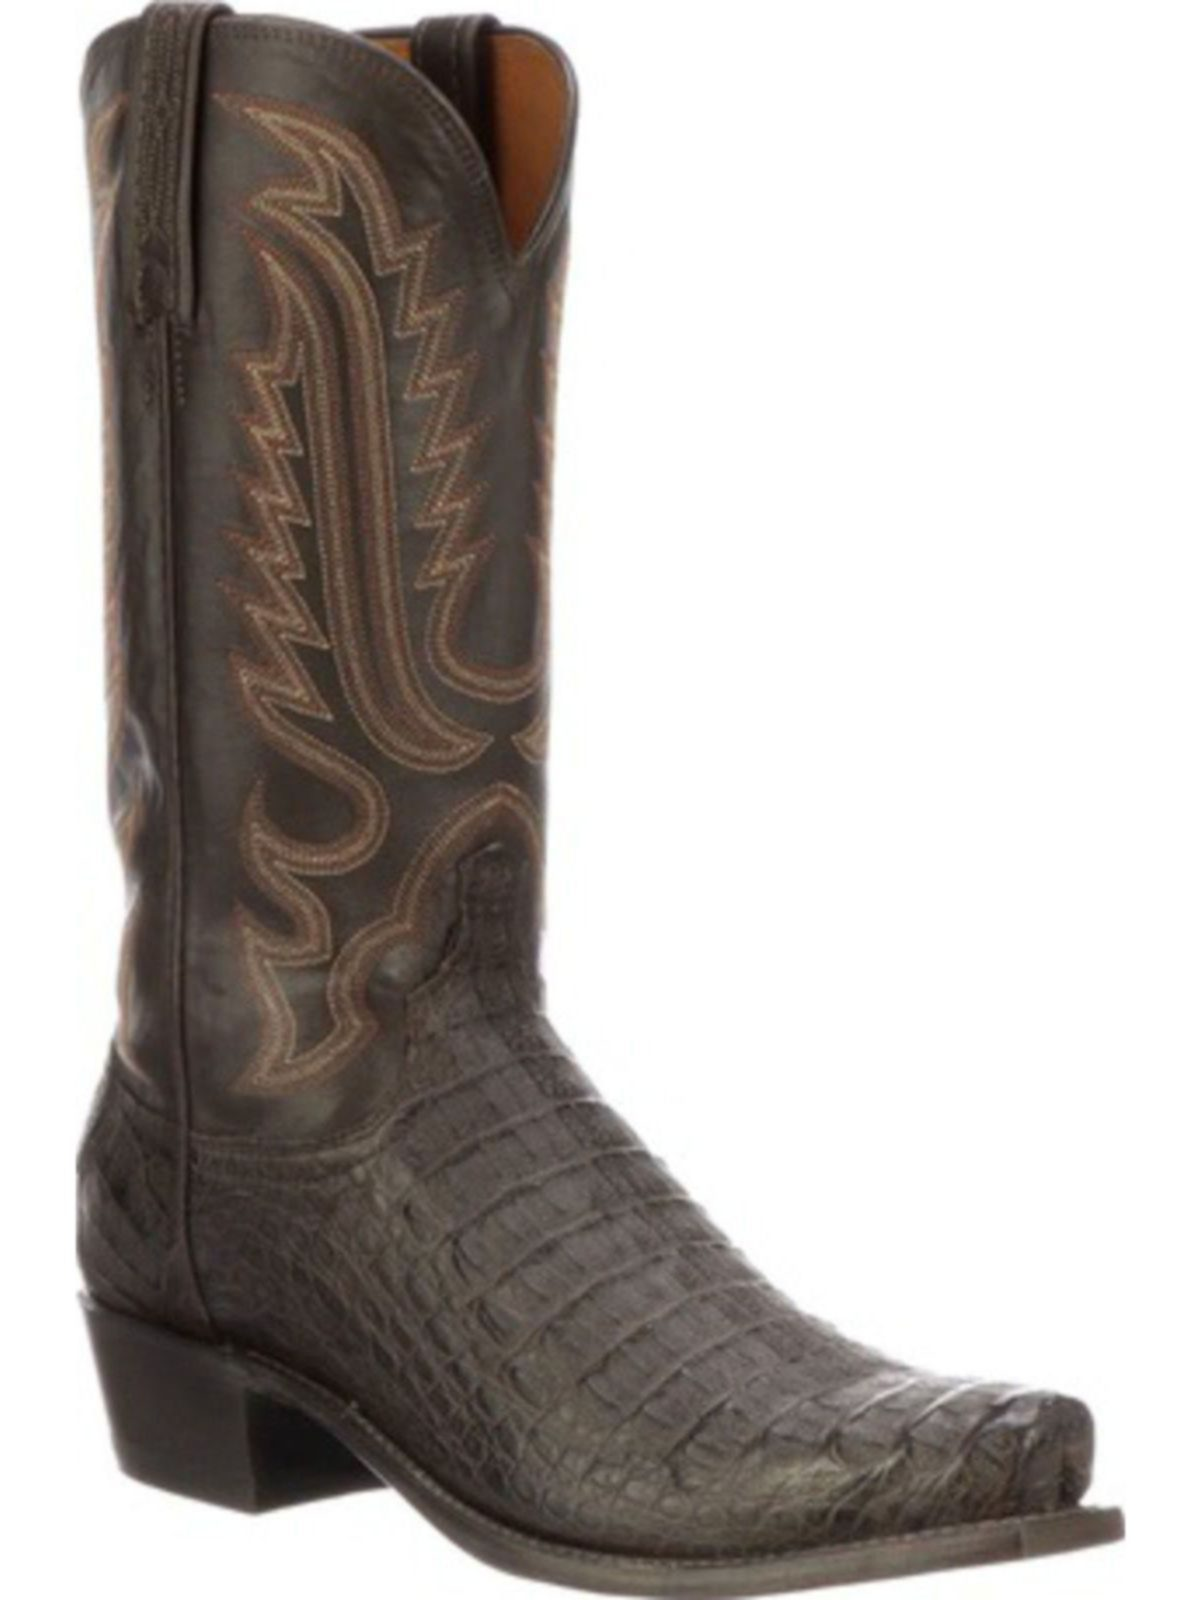 Bootamerica Lucchese Mens Walter Brl Brown Burnished